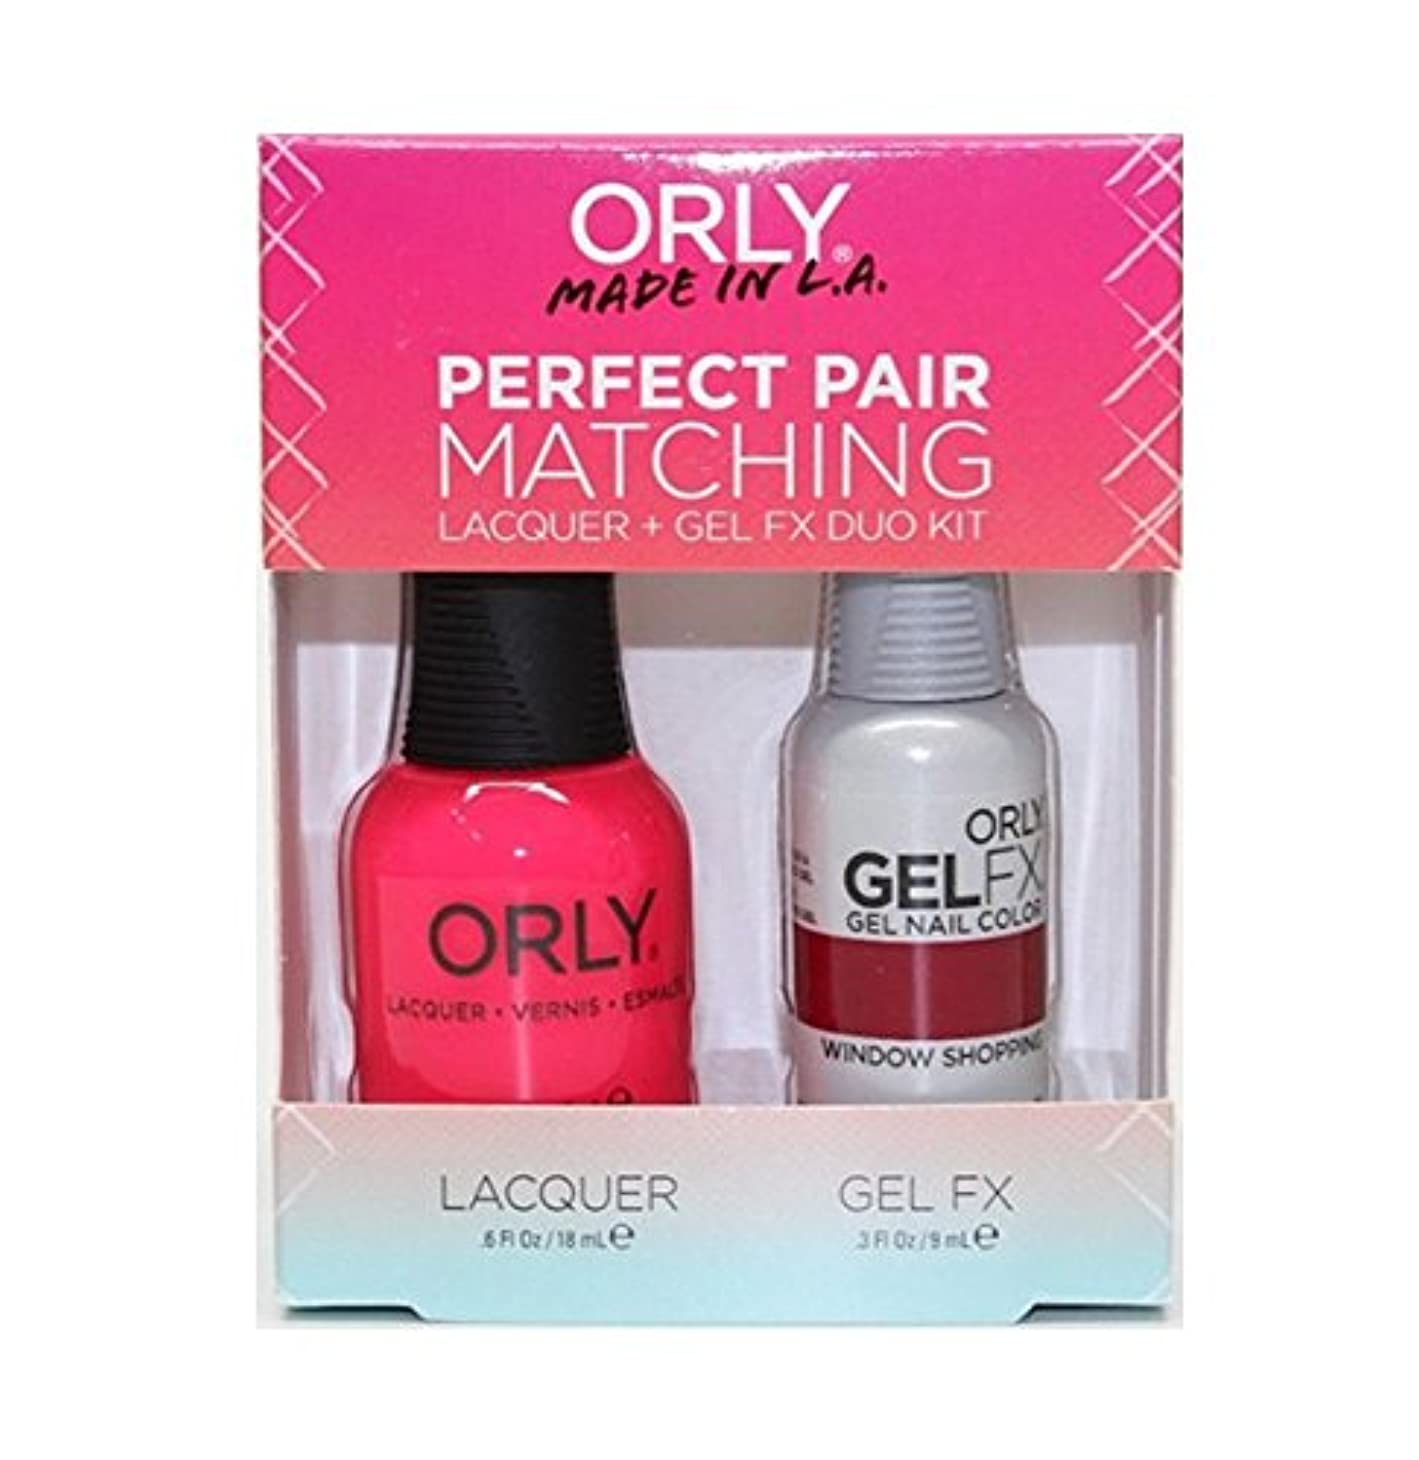 願う島混雑Orly - Perfect Pair Matching Lacquer+Gel FX Kit - Window Shopping - 0.6 oz / 0.3 oz